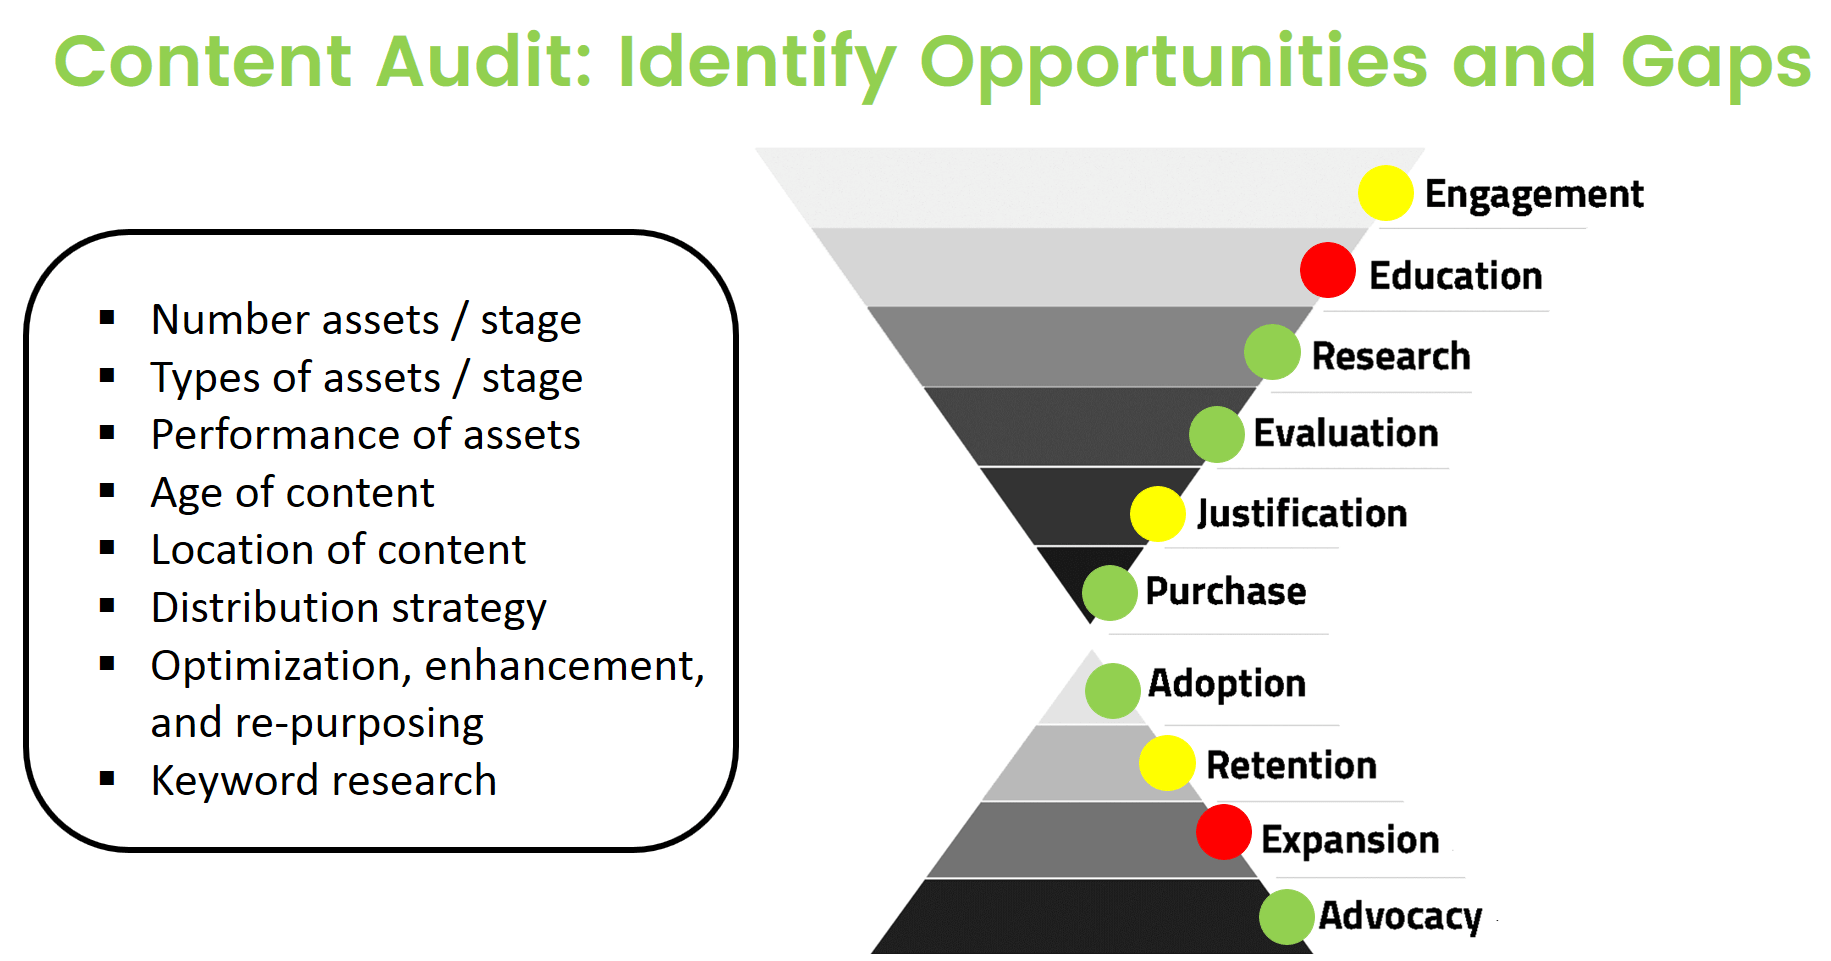 Content Audit Factors